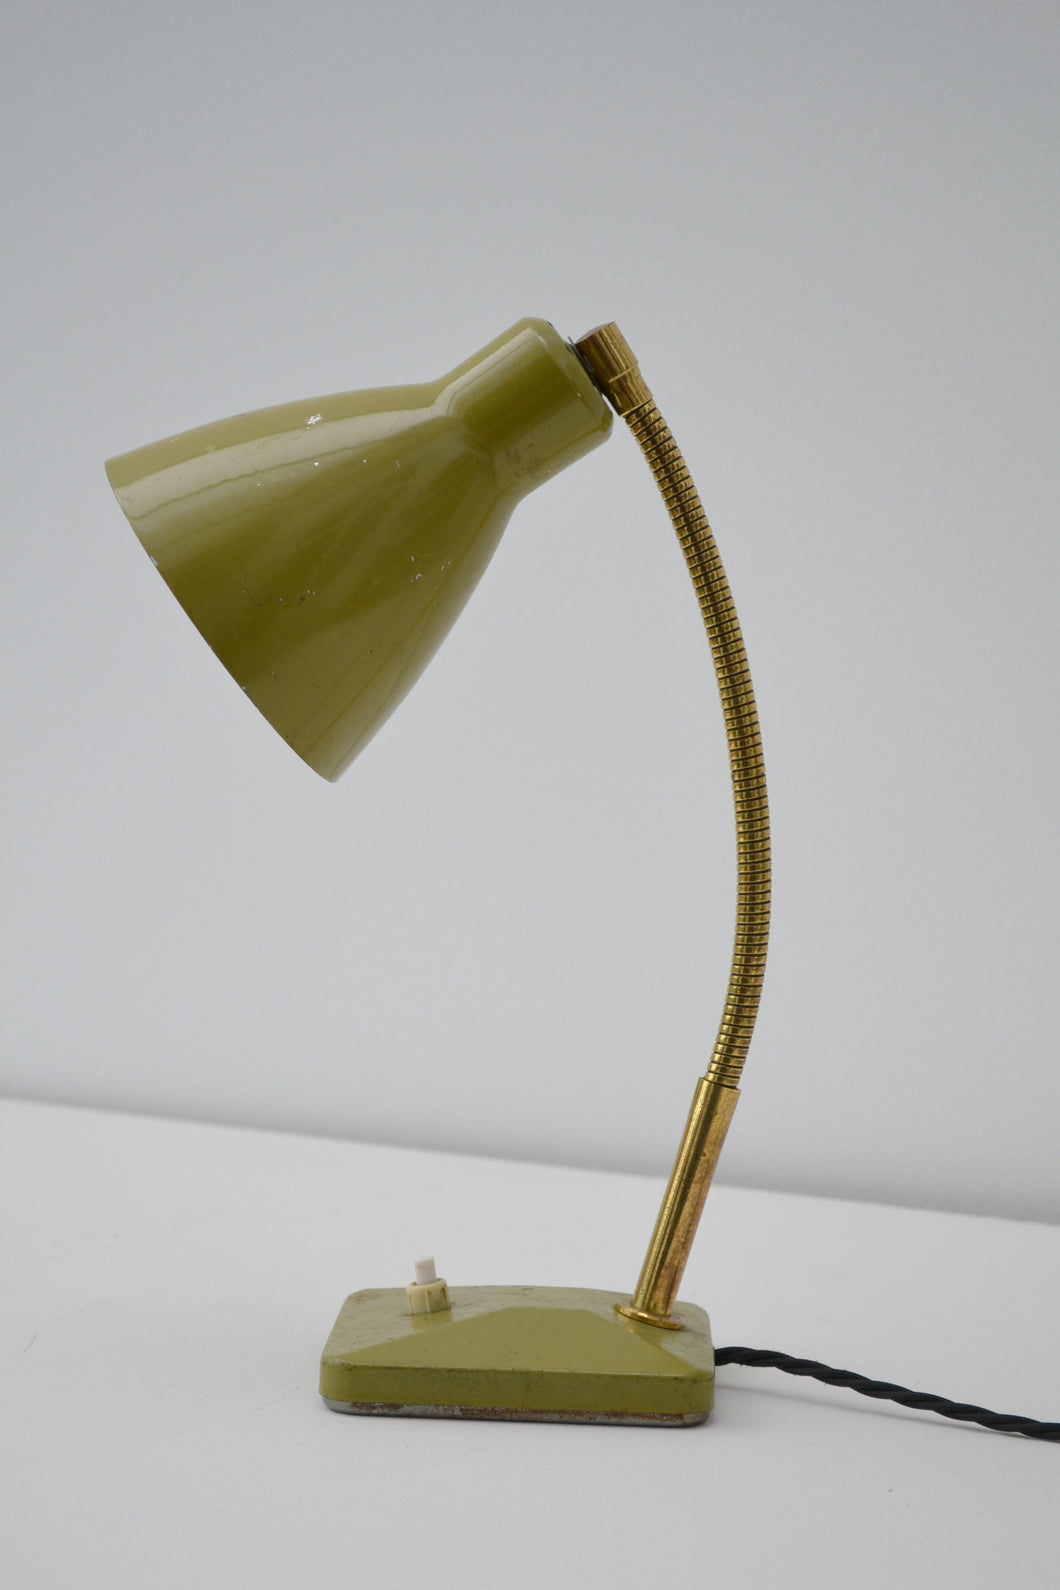 Vintage French Desk Lamp - Mid Century Modern SOLD